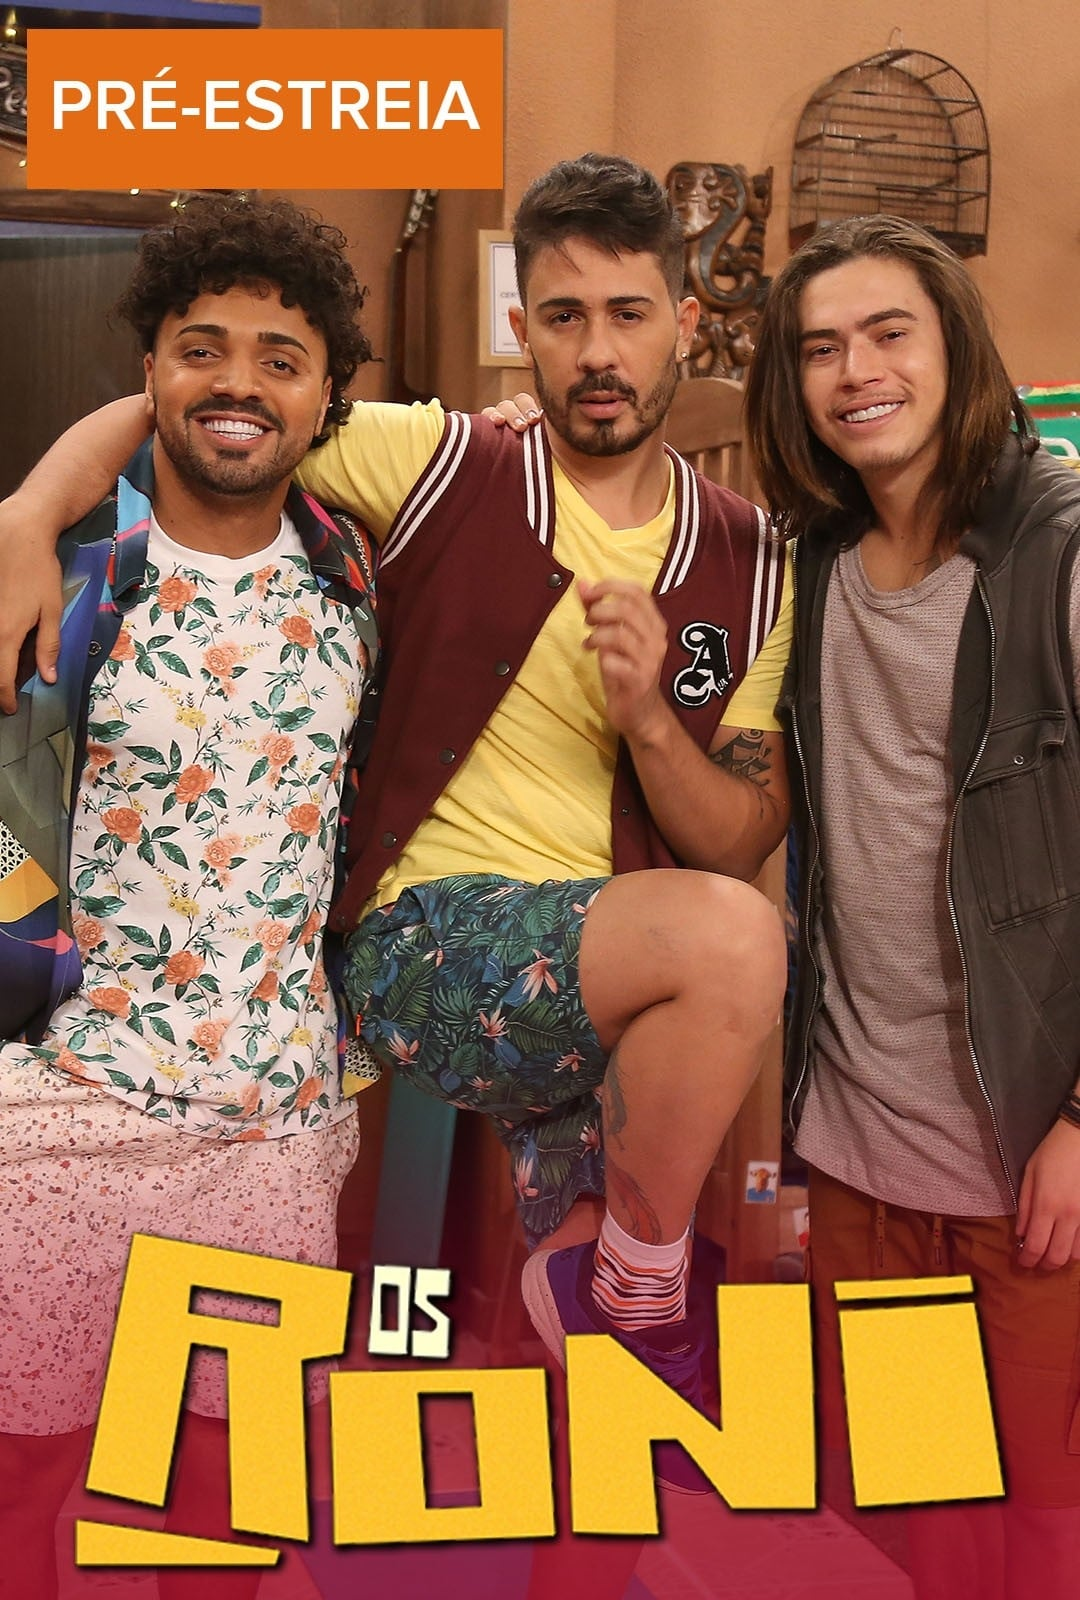 Os Roni 1ª Temporada Completa (2019) Torrent - WEB-DL 720p Nacional Download